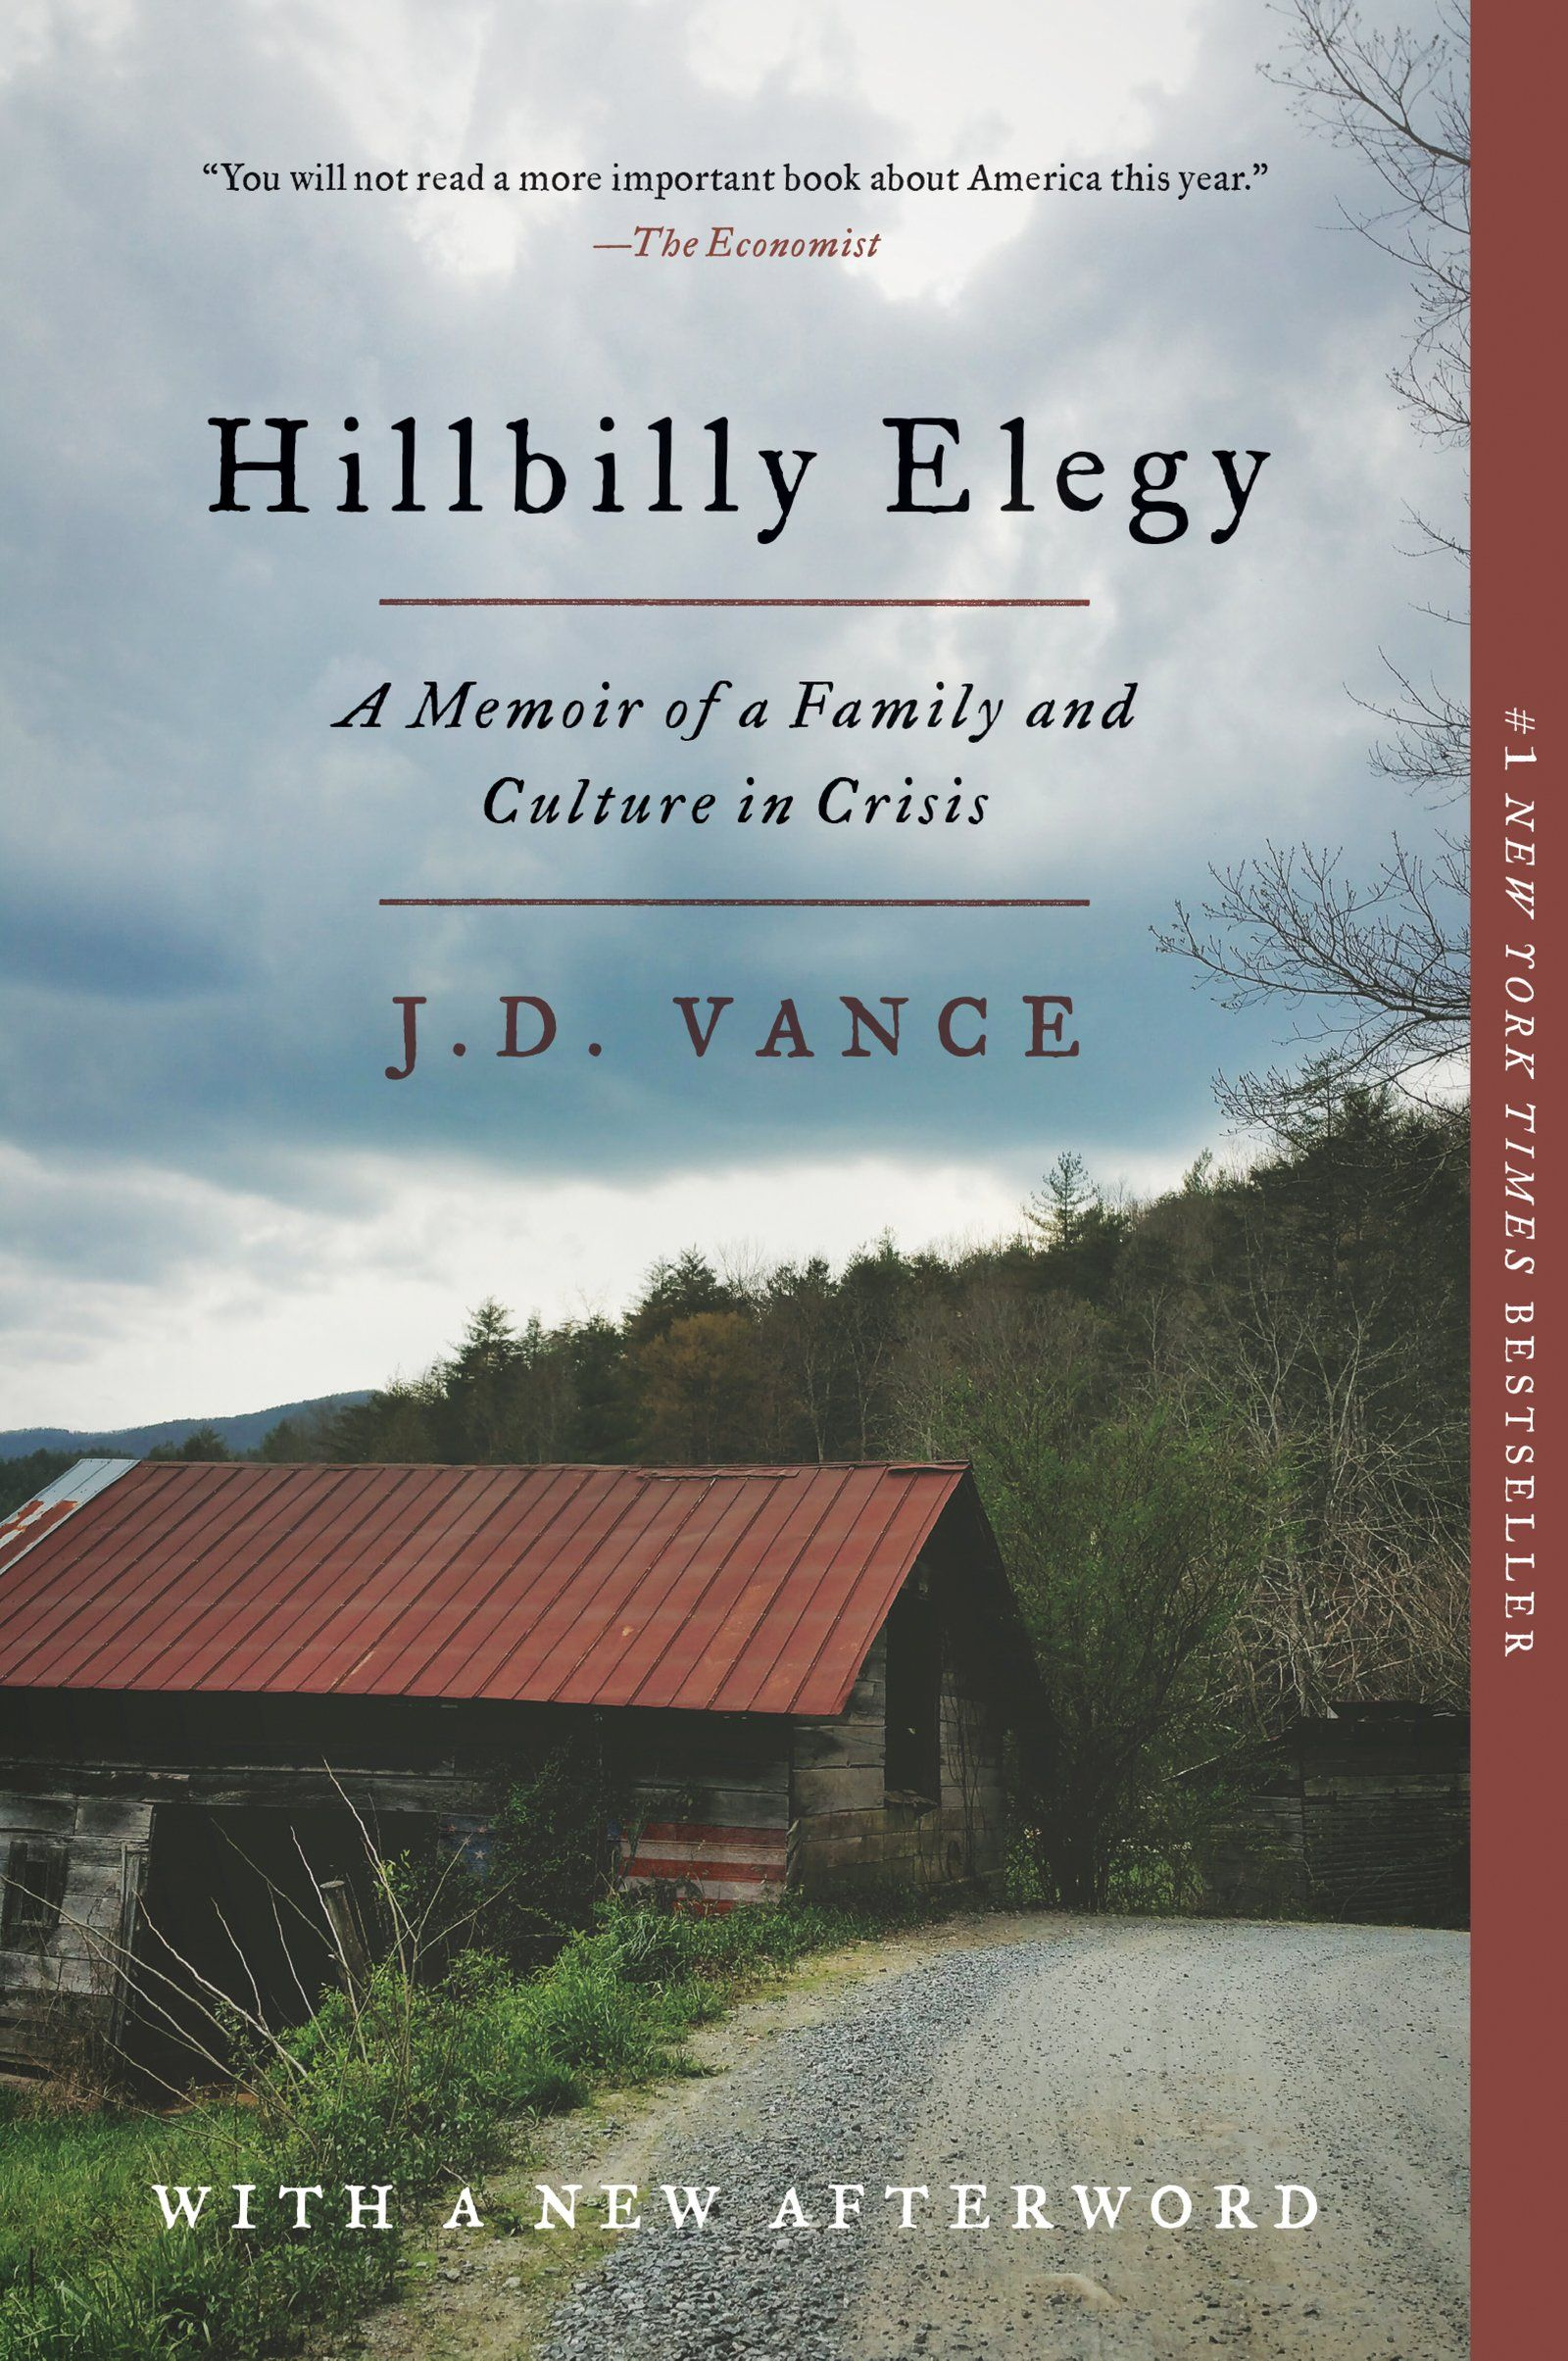 Hillbilly Elegy A Memoir Of A Family And Culture In Crisis Paperback May 1 2018 Memoir Family Hillbilly Elegy Hillbilly Elegy Elegy Memoirs